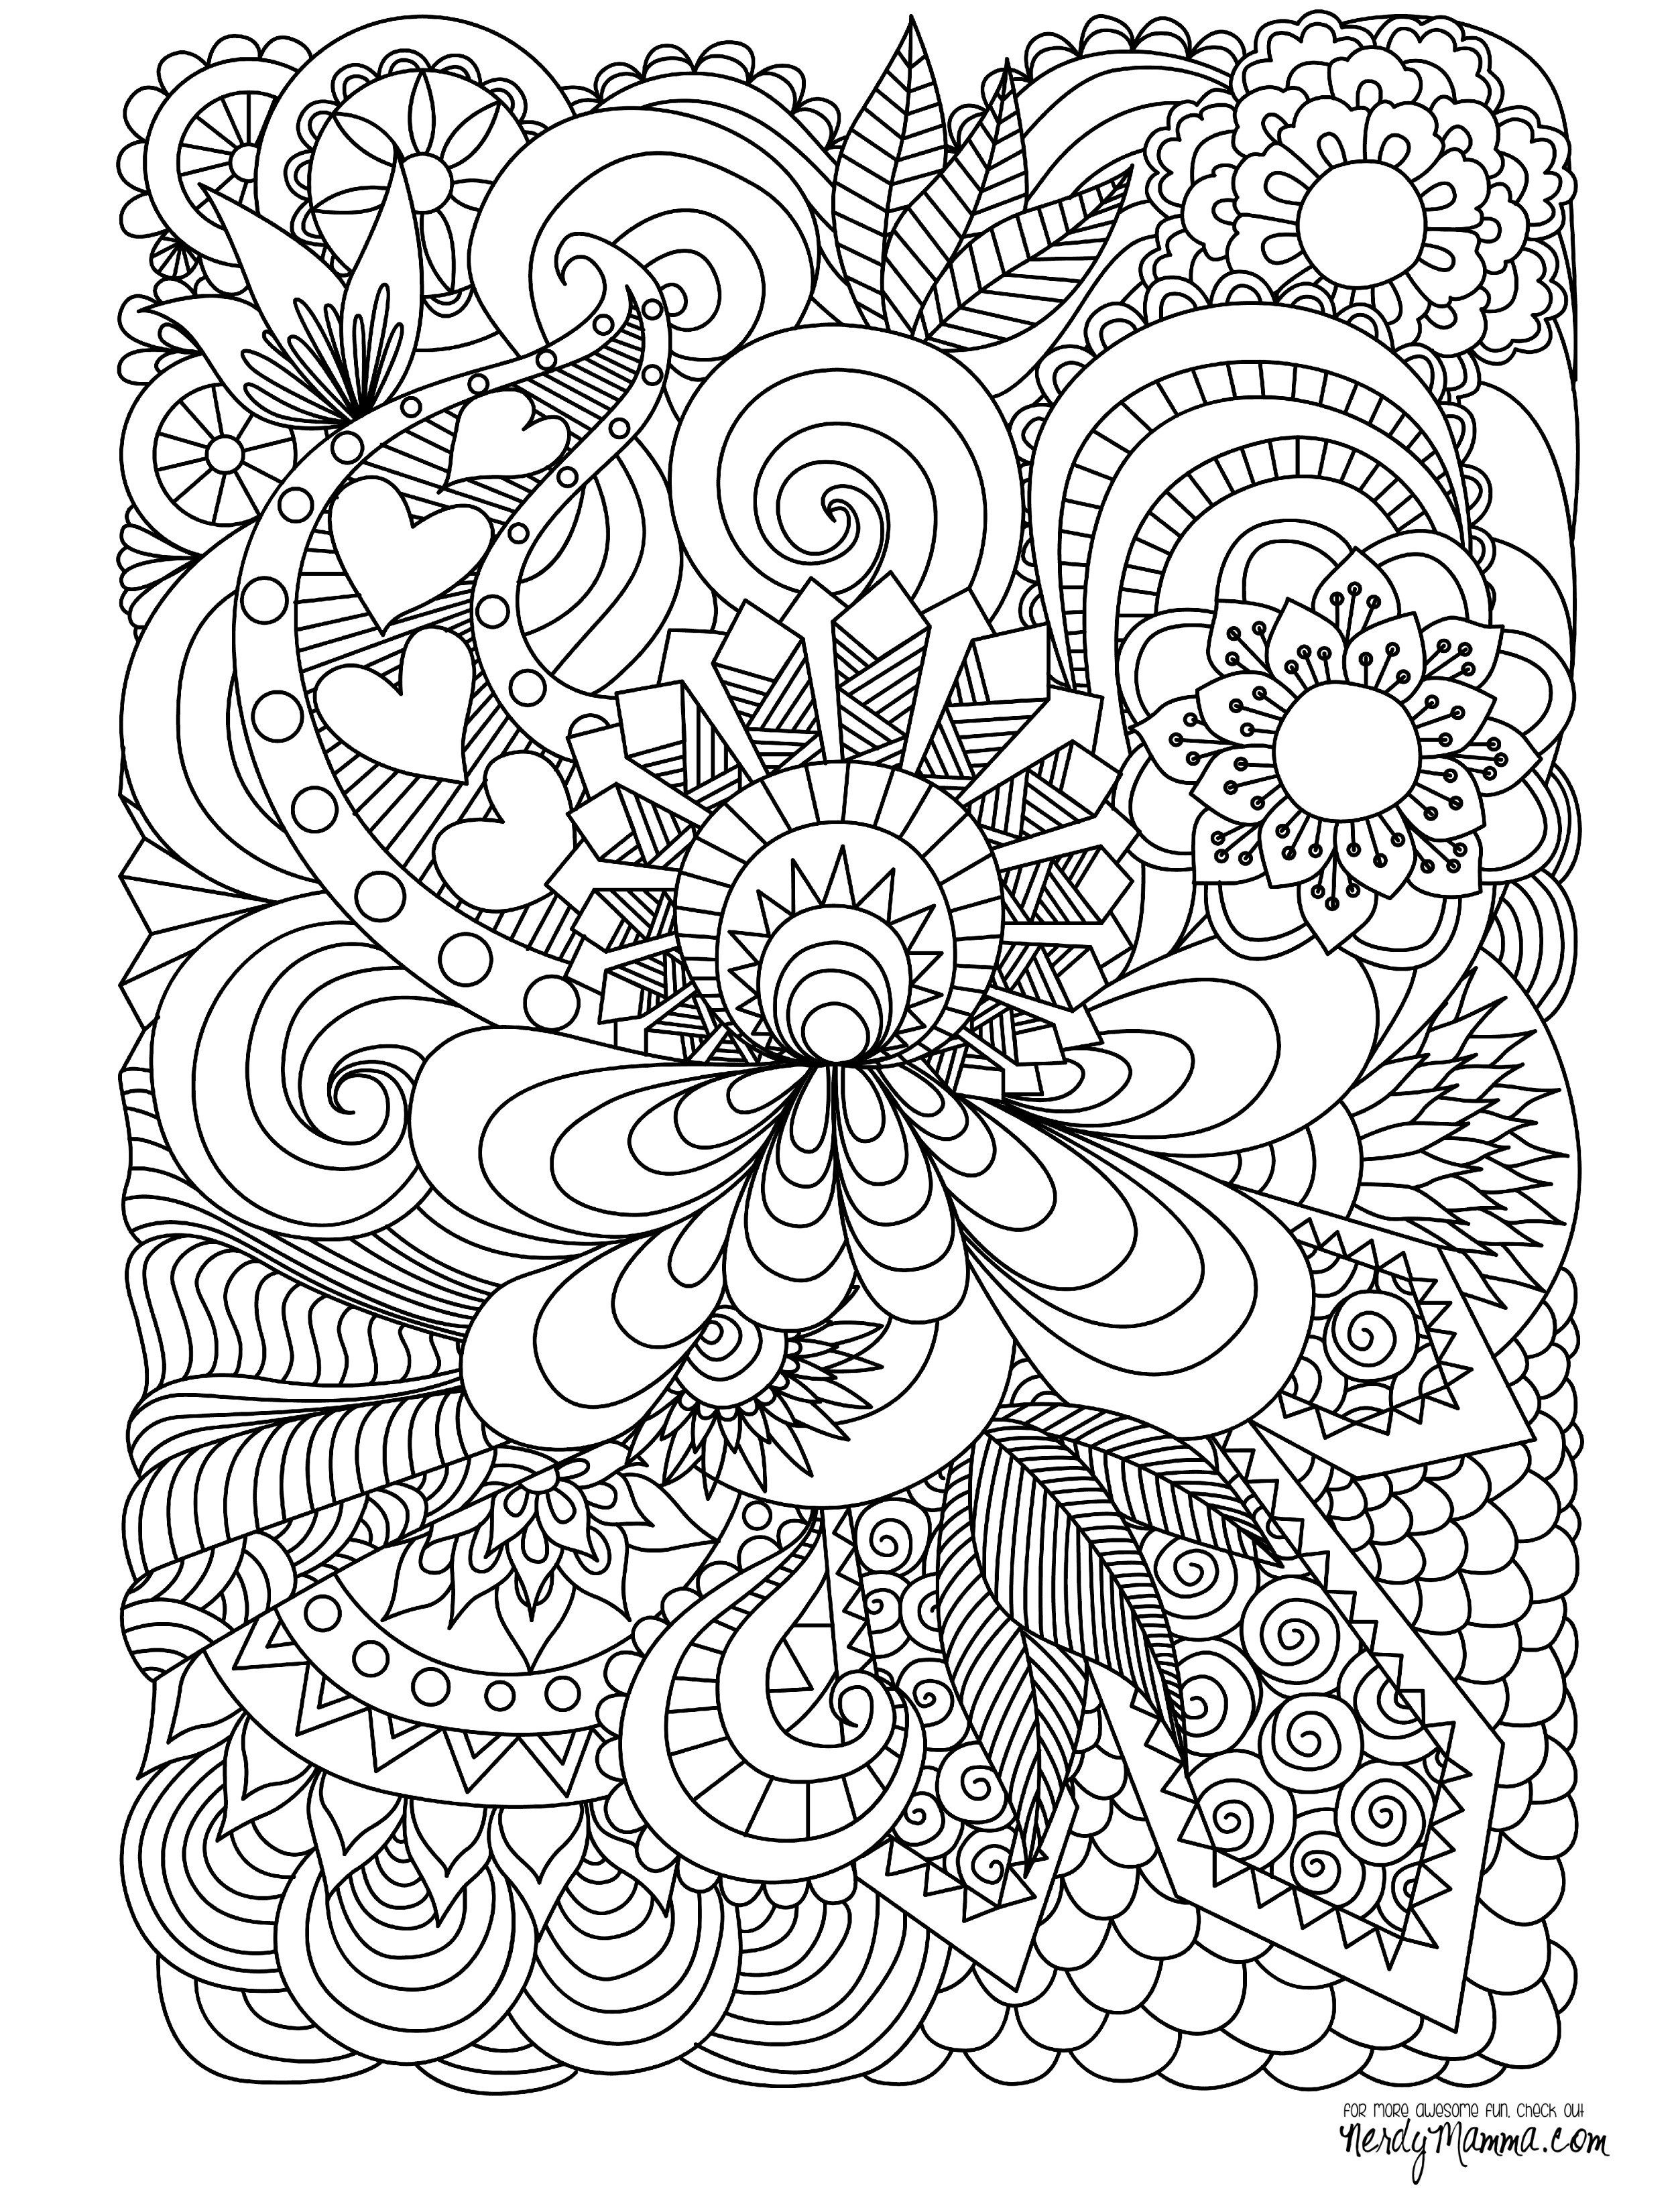 printable doodlebop coloring pages - photo#42